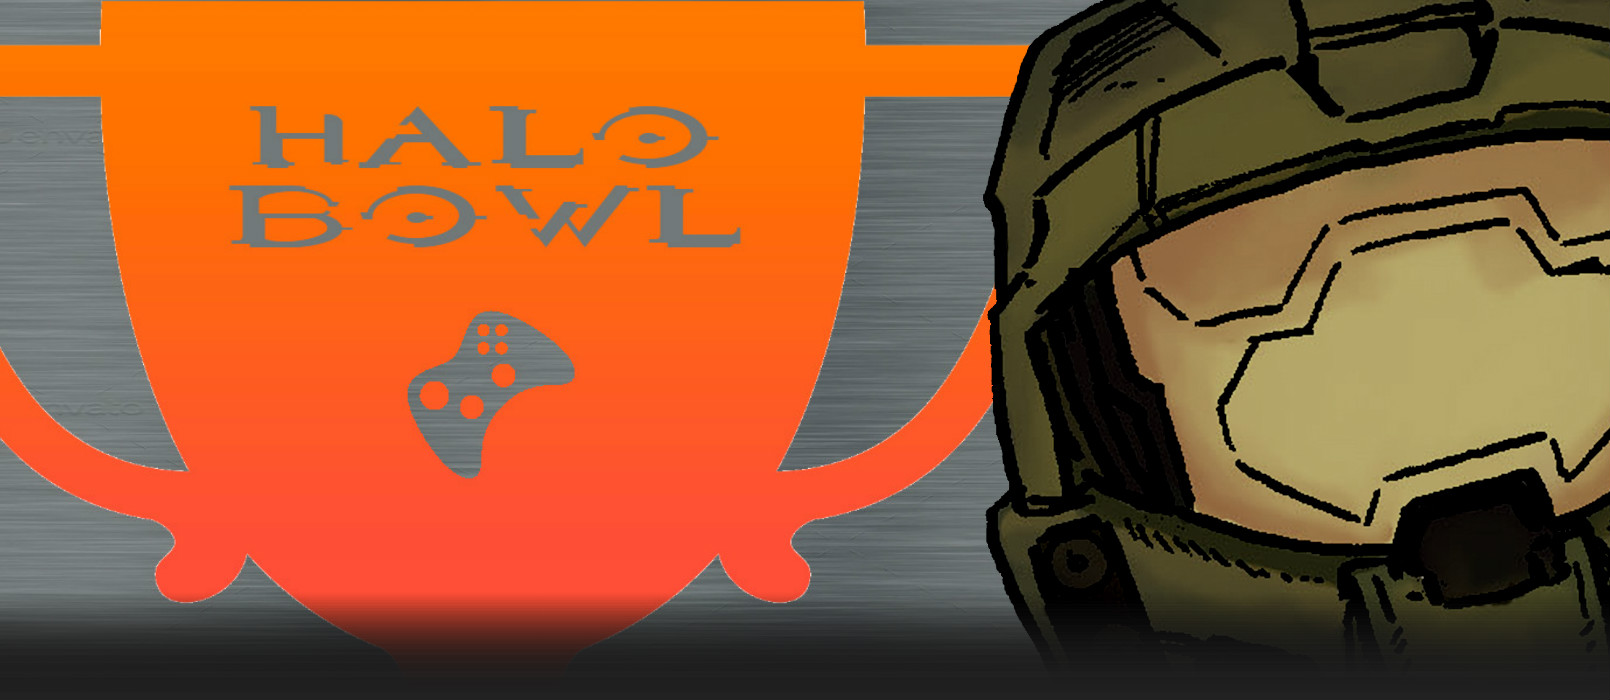 Halo Bowl • 2019 - June 22th, 2019 @ 5:00 PM EDT